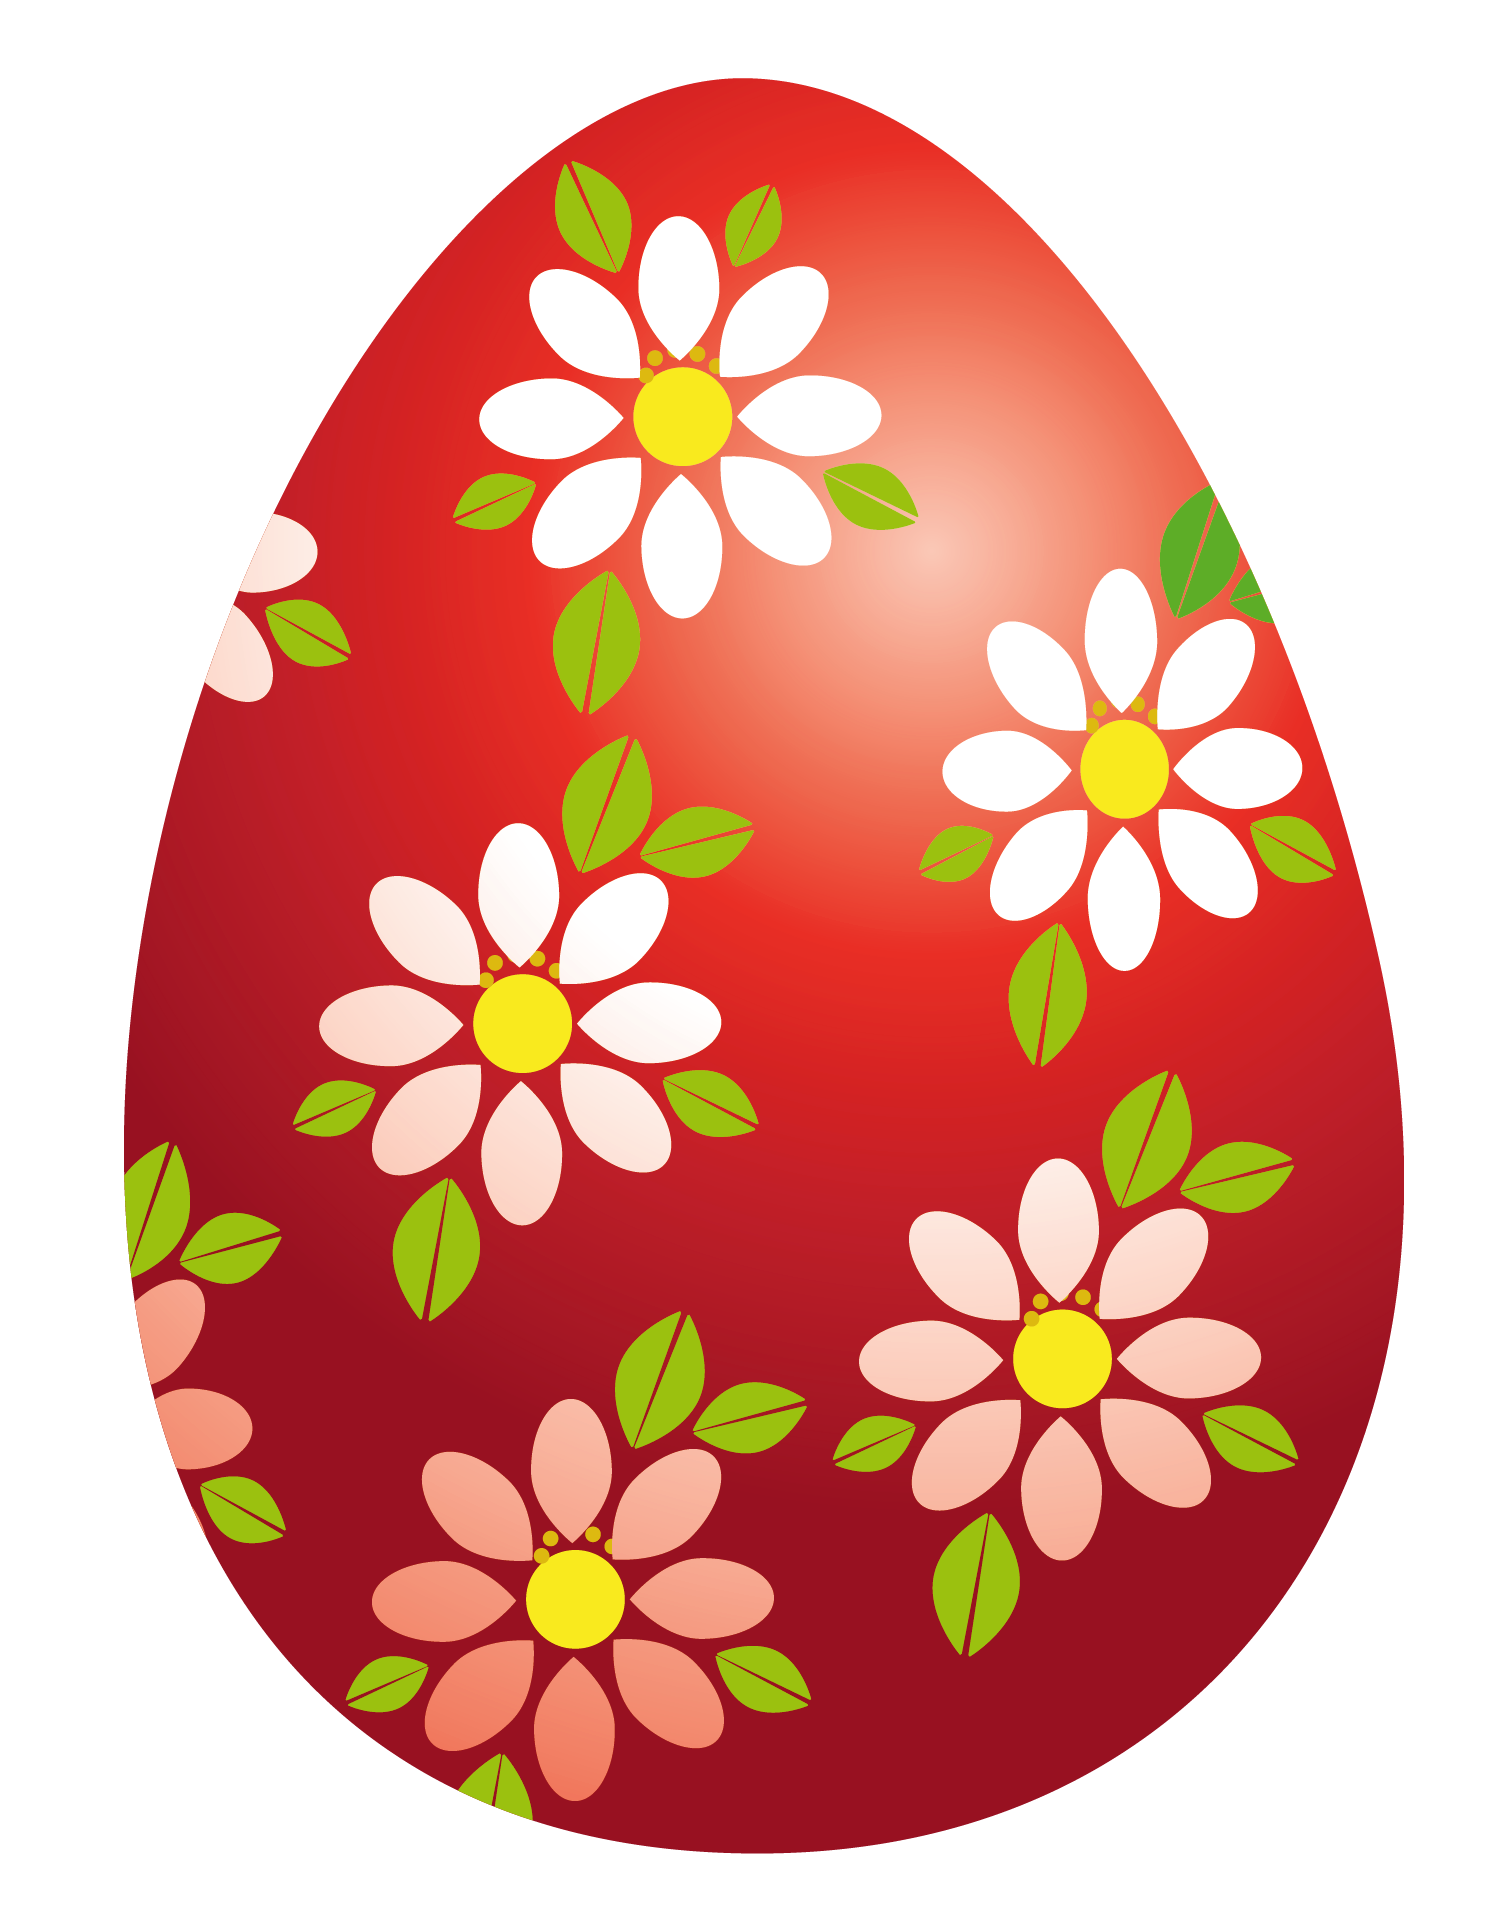 Easter flower clipart clipart royalty free library Easter Red Egg with Flowers PNG Clipart Picture clipart royalty free library